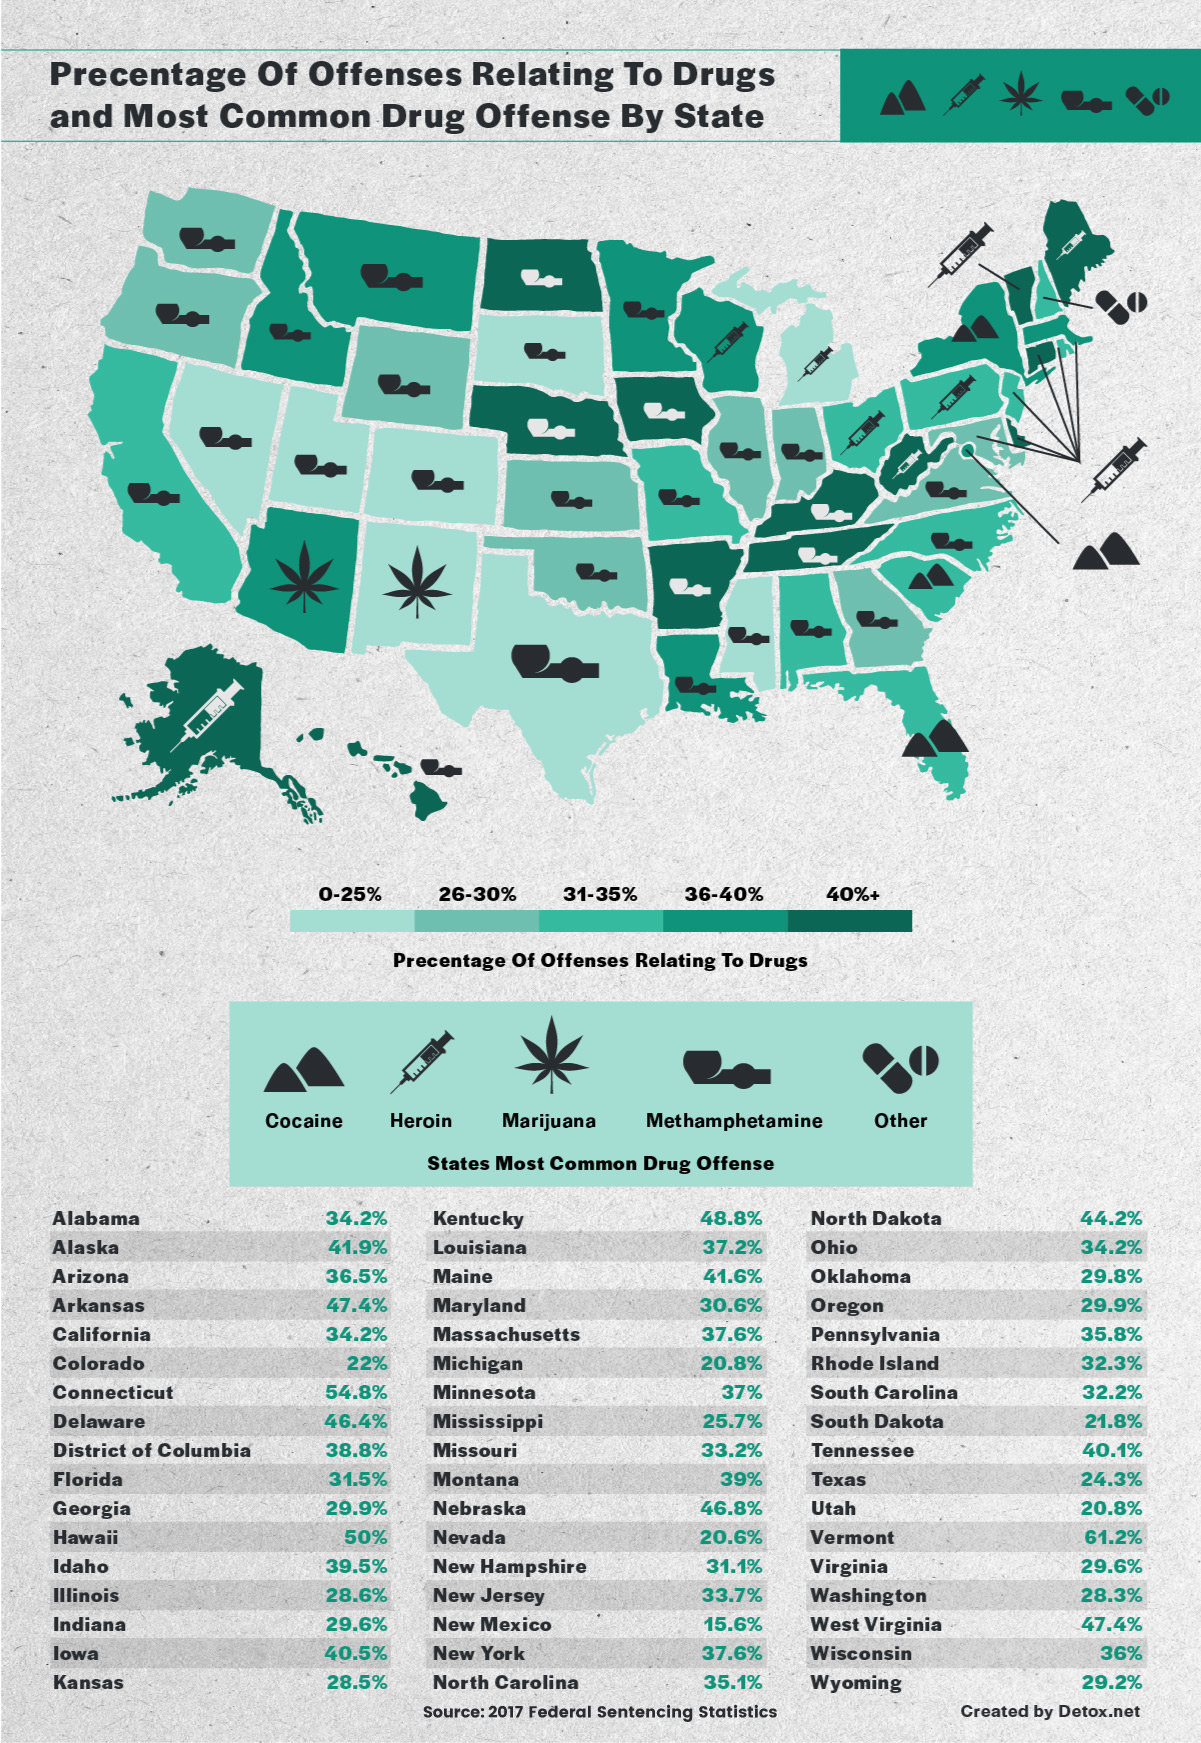 Maps reveal how each U.S. state enforces drug laws differently